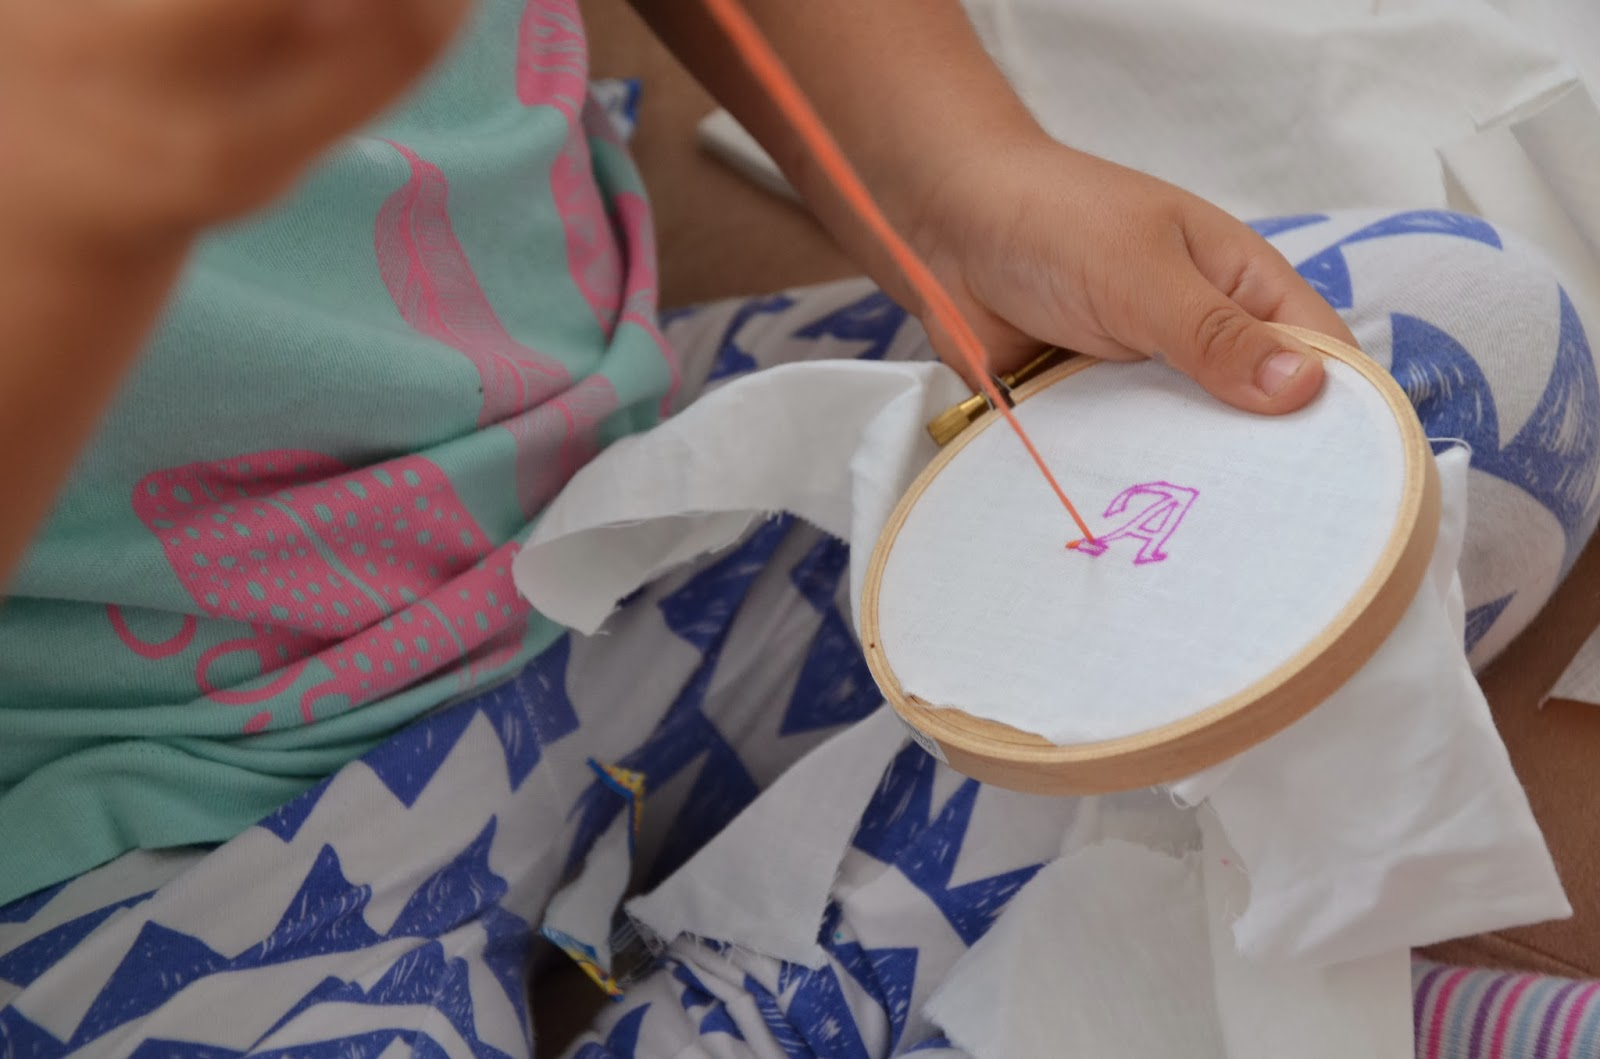 Teaching kids hand embroidery